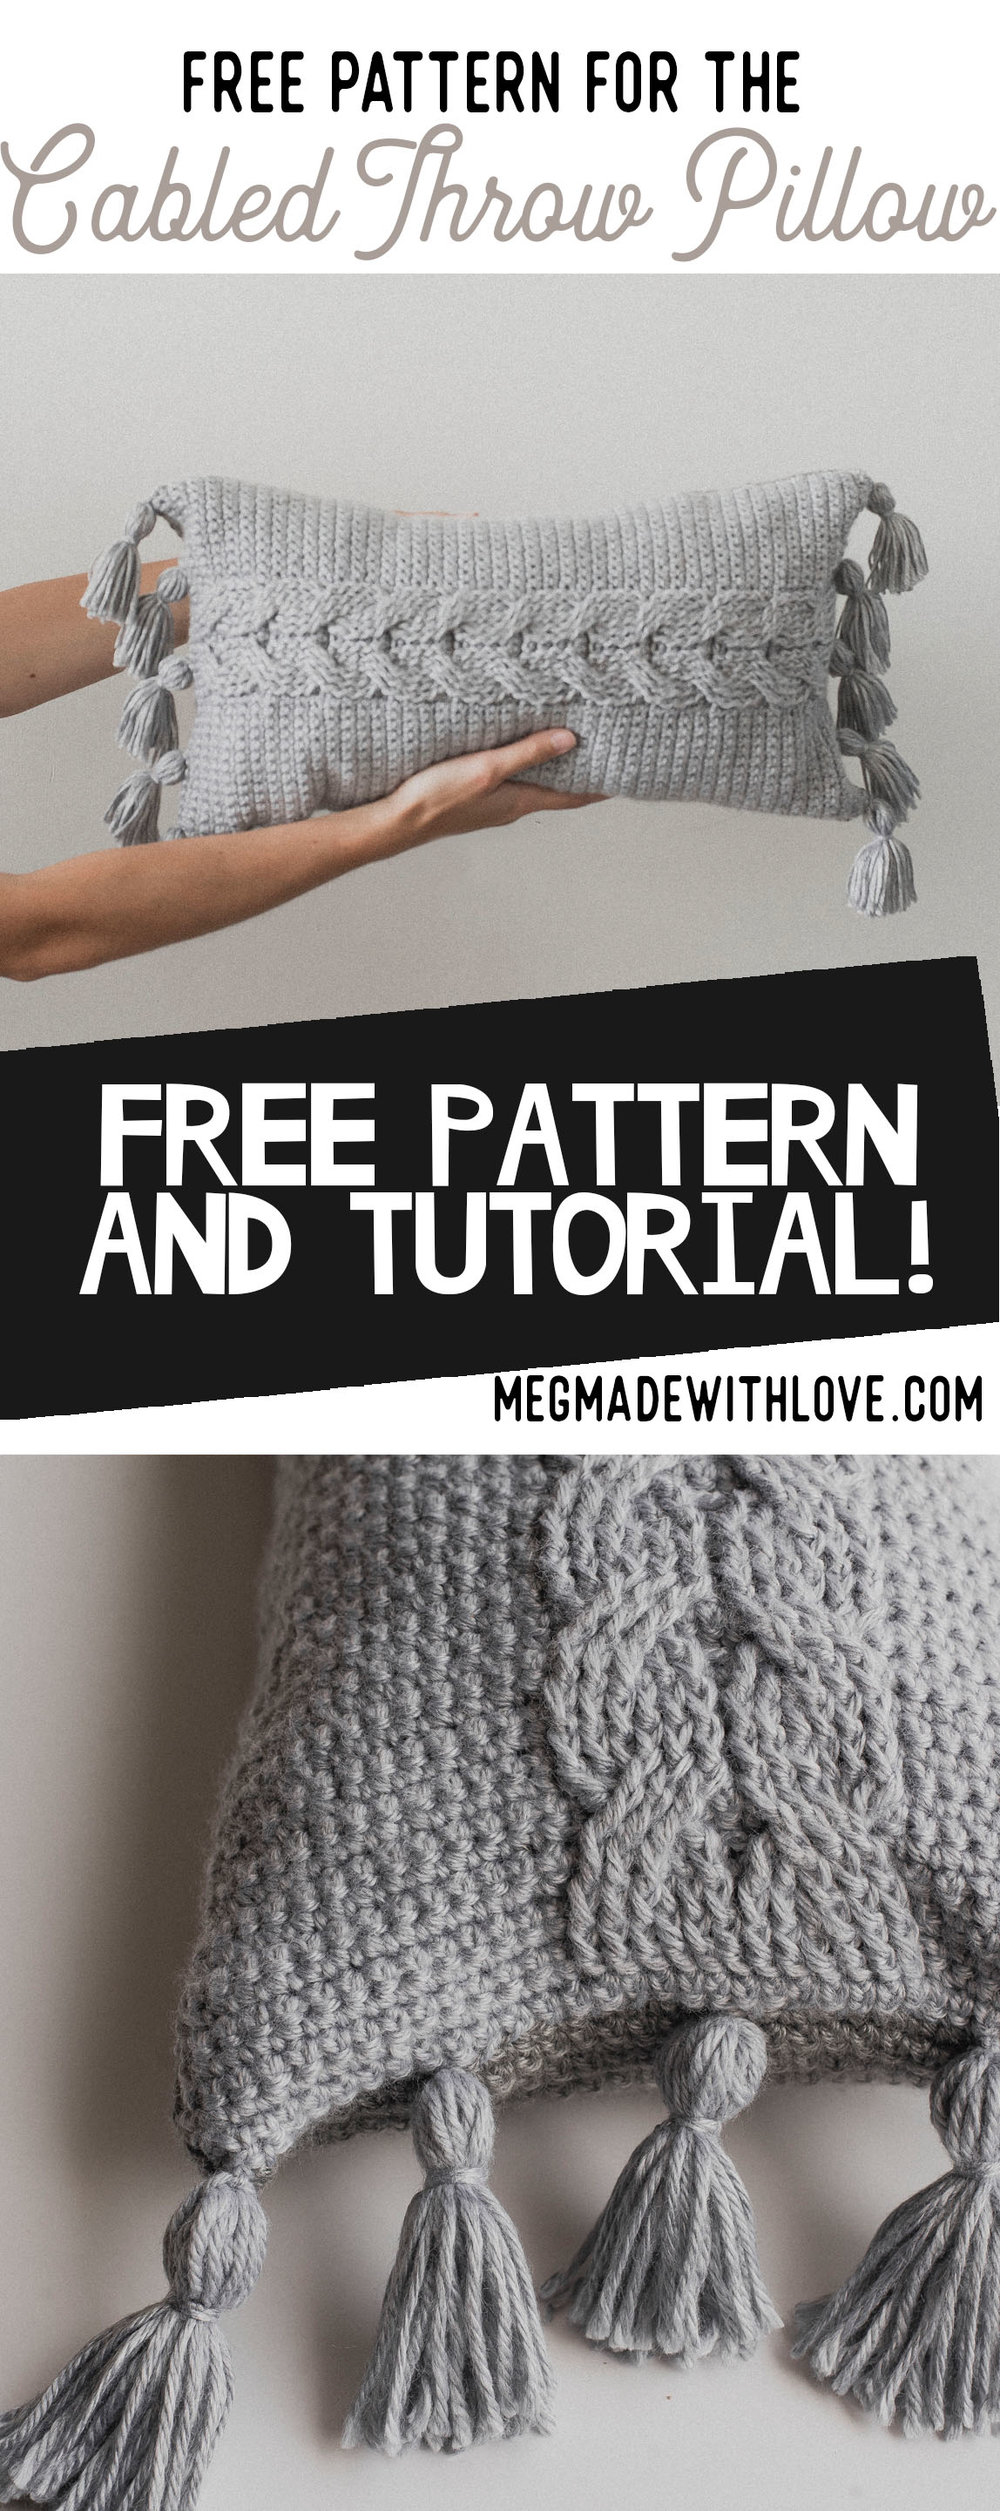 Free Crochet Pattern for Cable Crochet Pillow - Megmade with Love